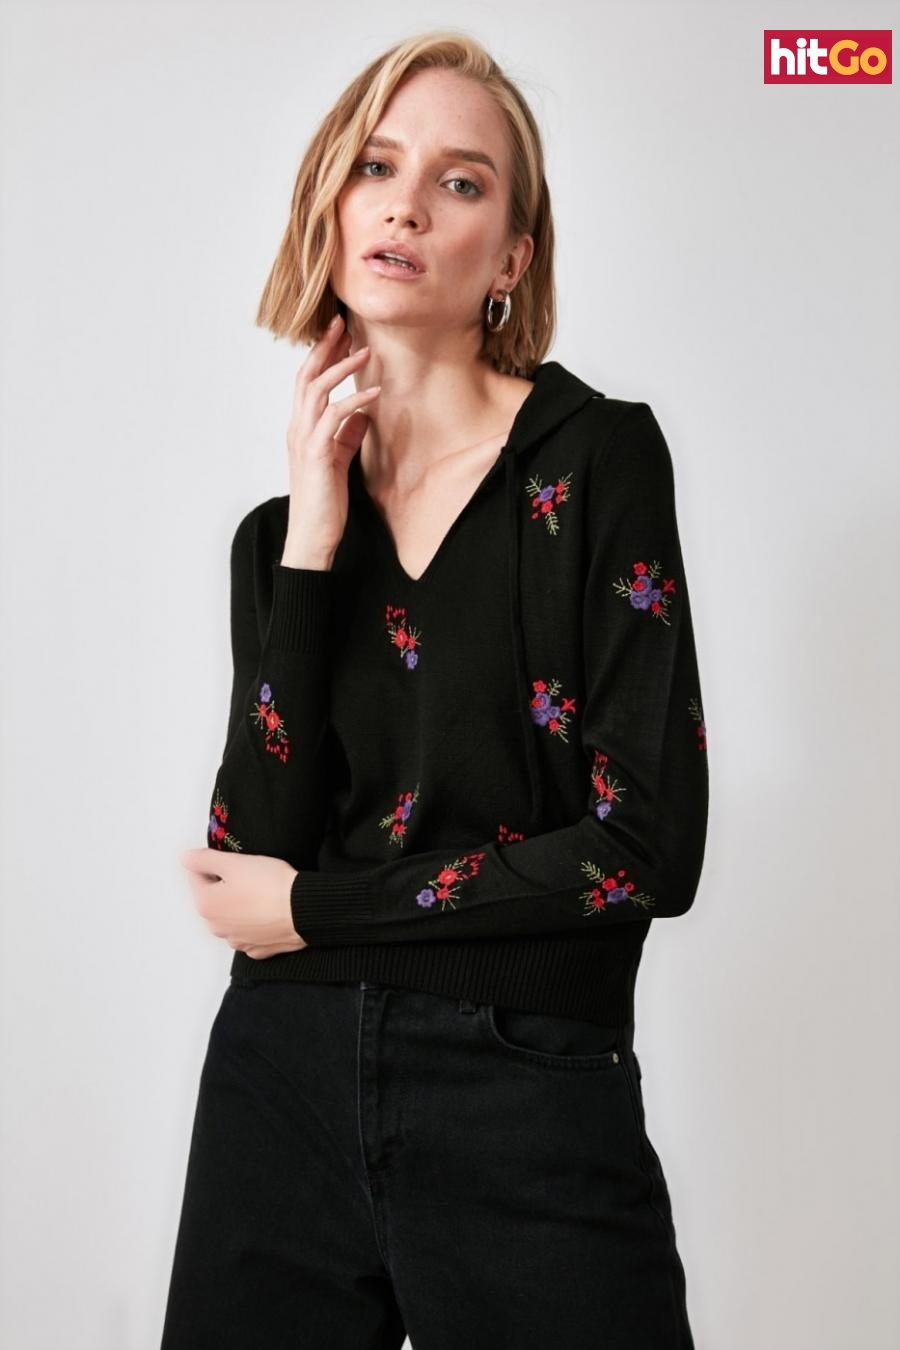 Trendyol Knitwear Sweater with Black Floral Embroidery dámské M